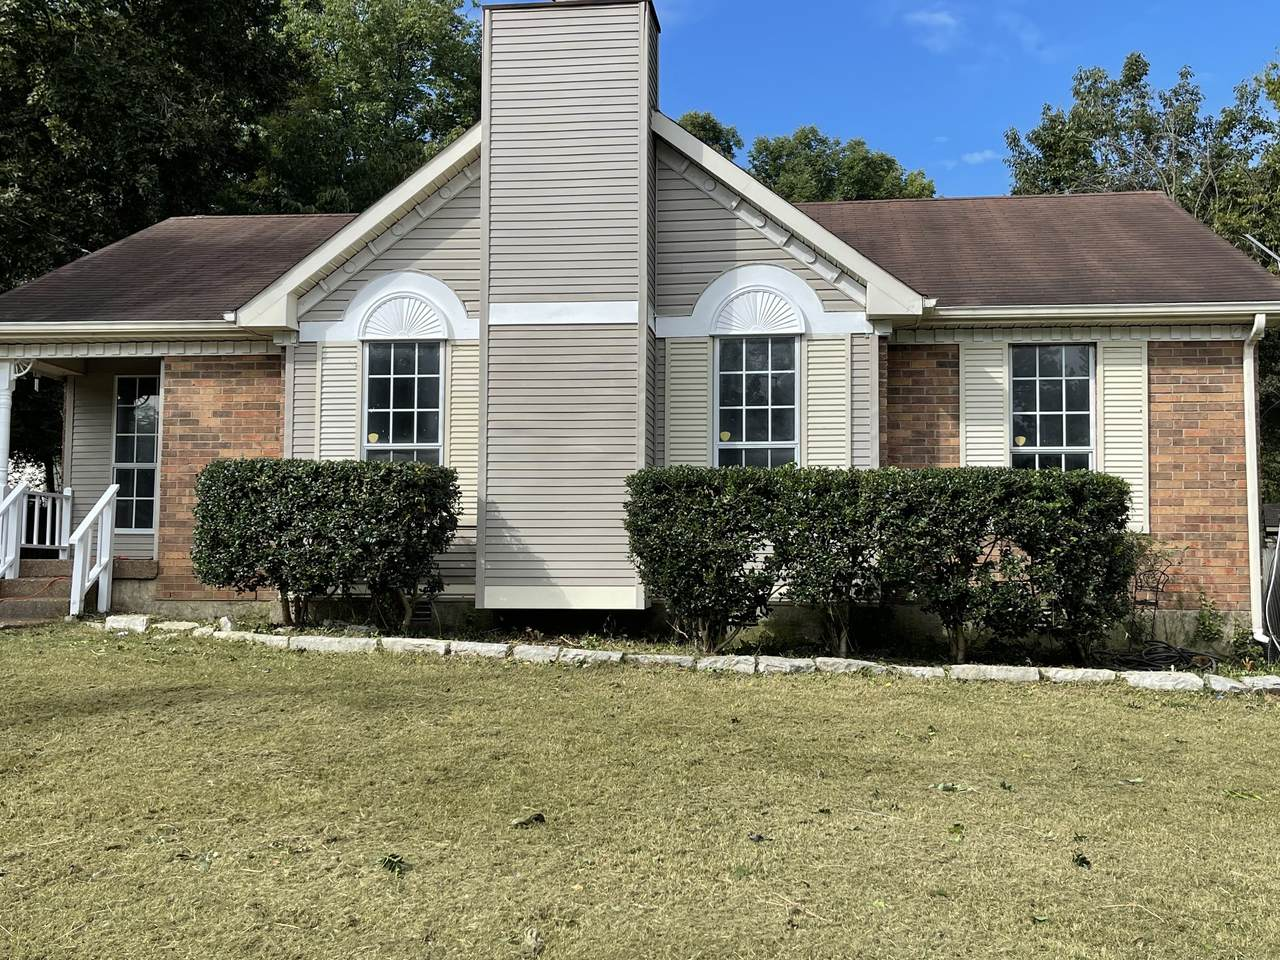 3029 Towne Valley Rd - Photo 1